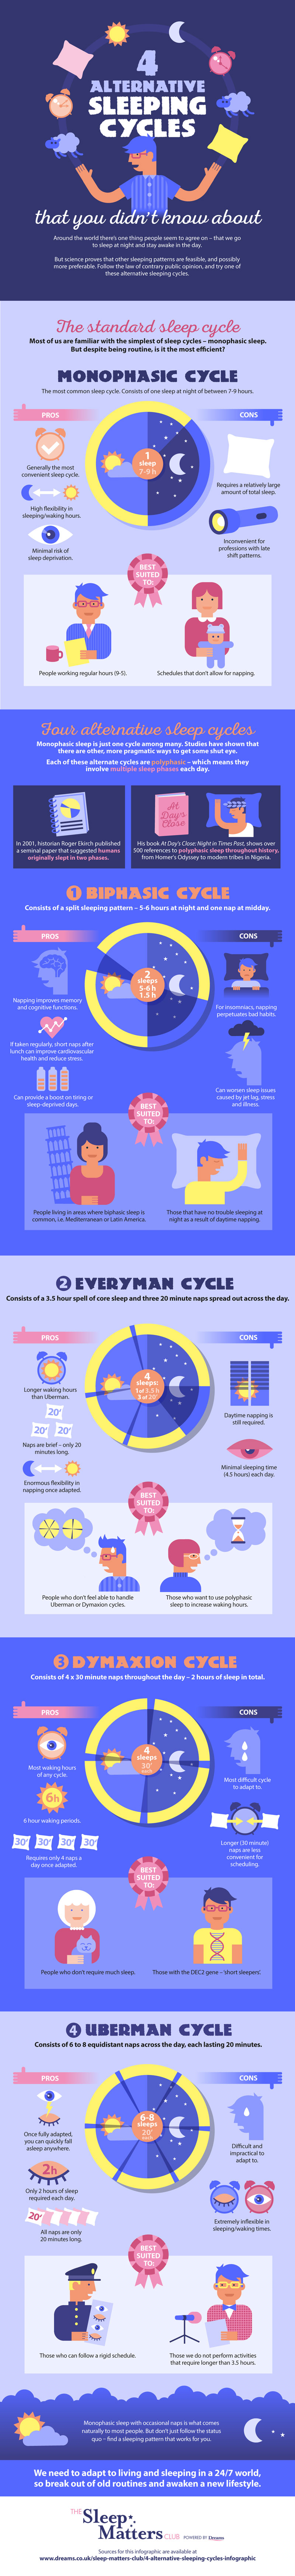 Modern Living Demands New Choices: New Alternative Sleep Cycles - Infographic